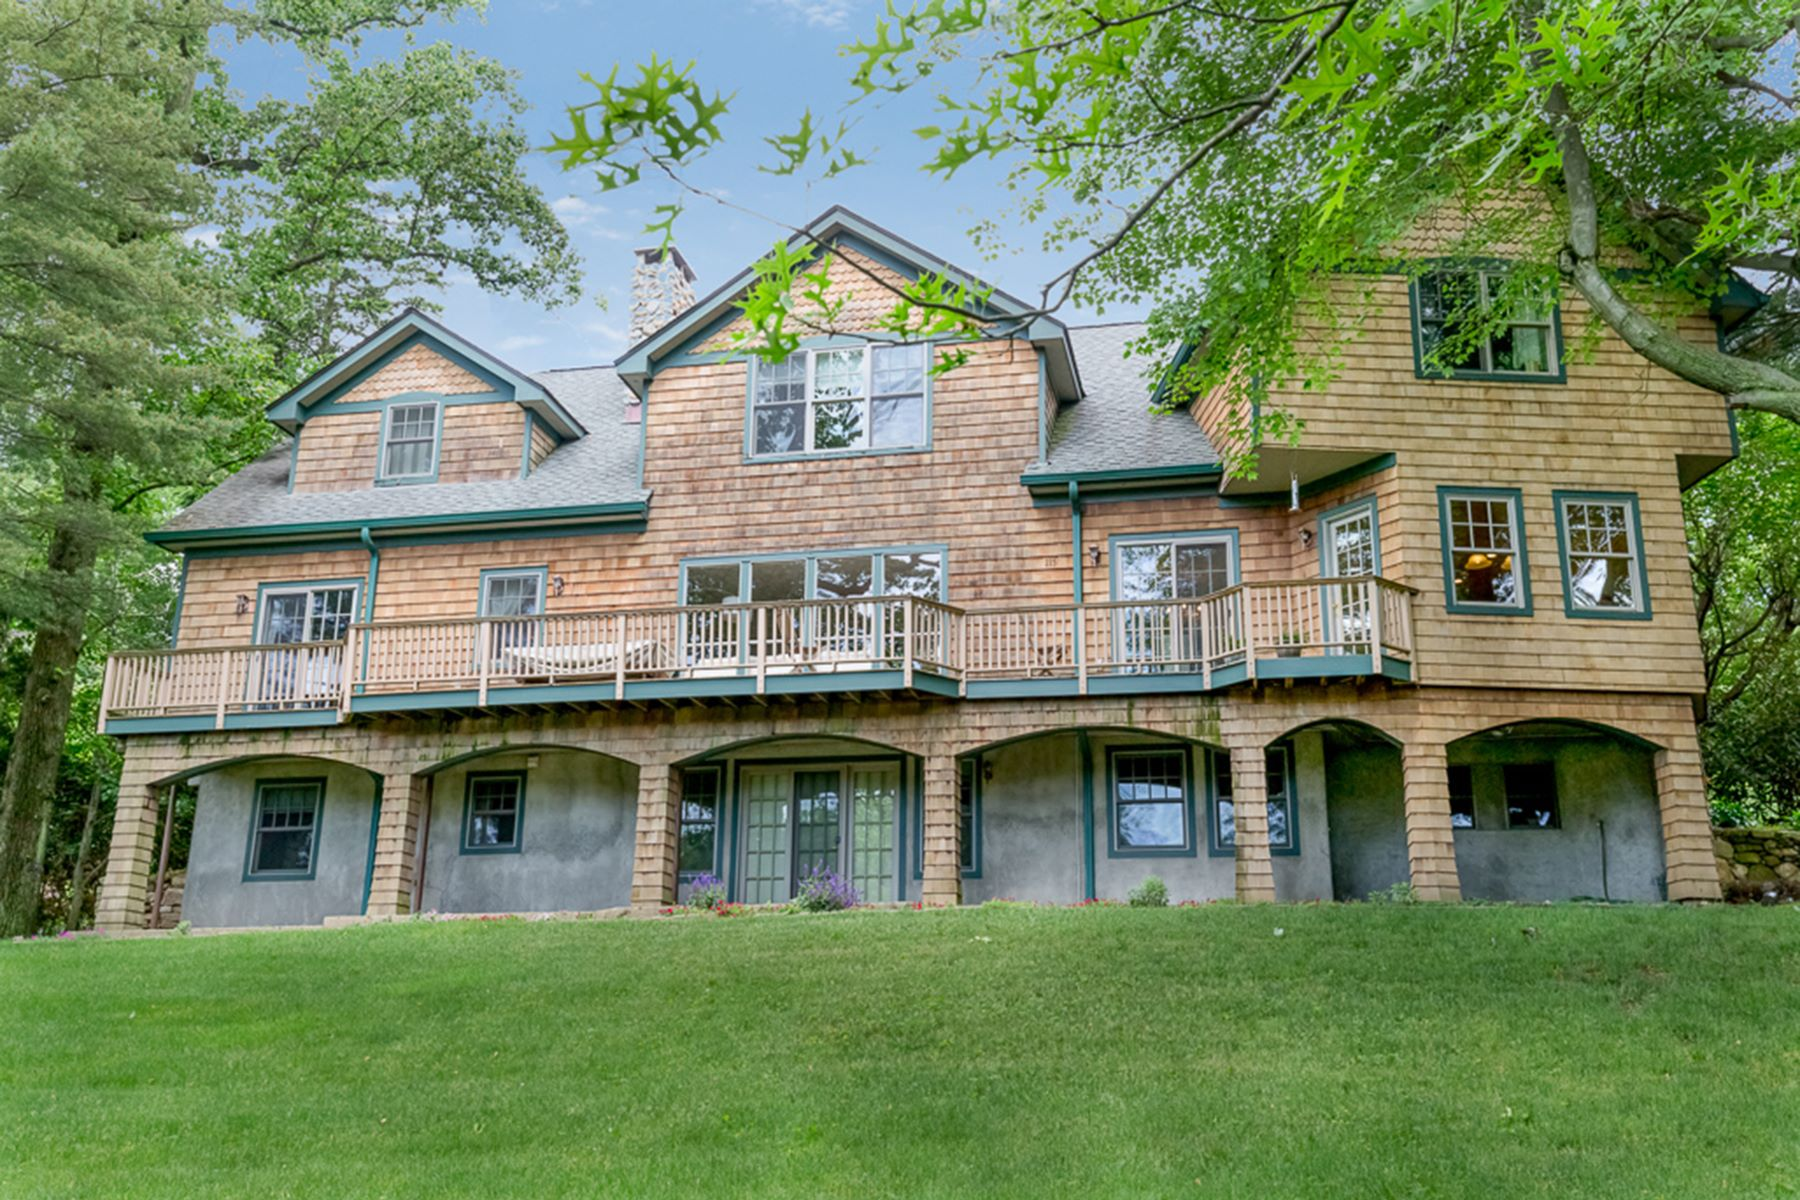 Single Family Home for Rent at Idyllic Upscale Lake Isle Home 115 Lakeshore Drive Eastchester, New York 10709 United States